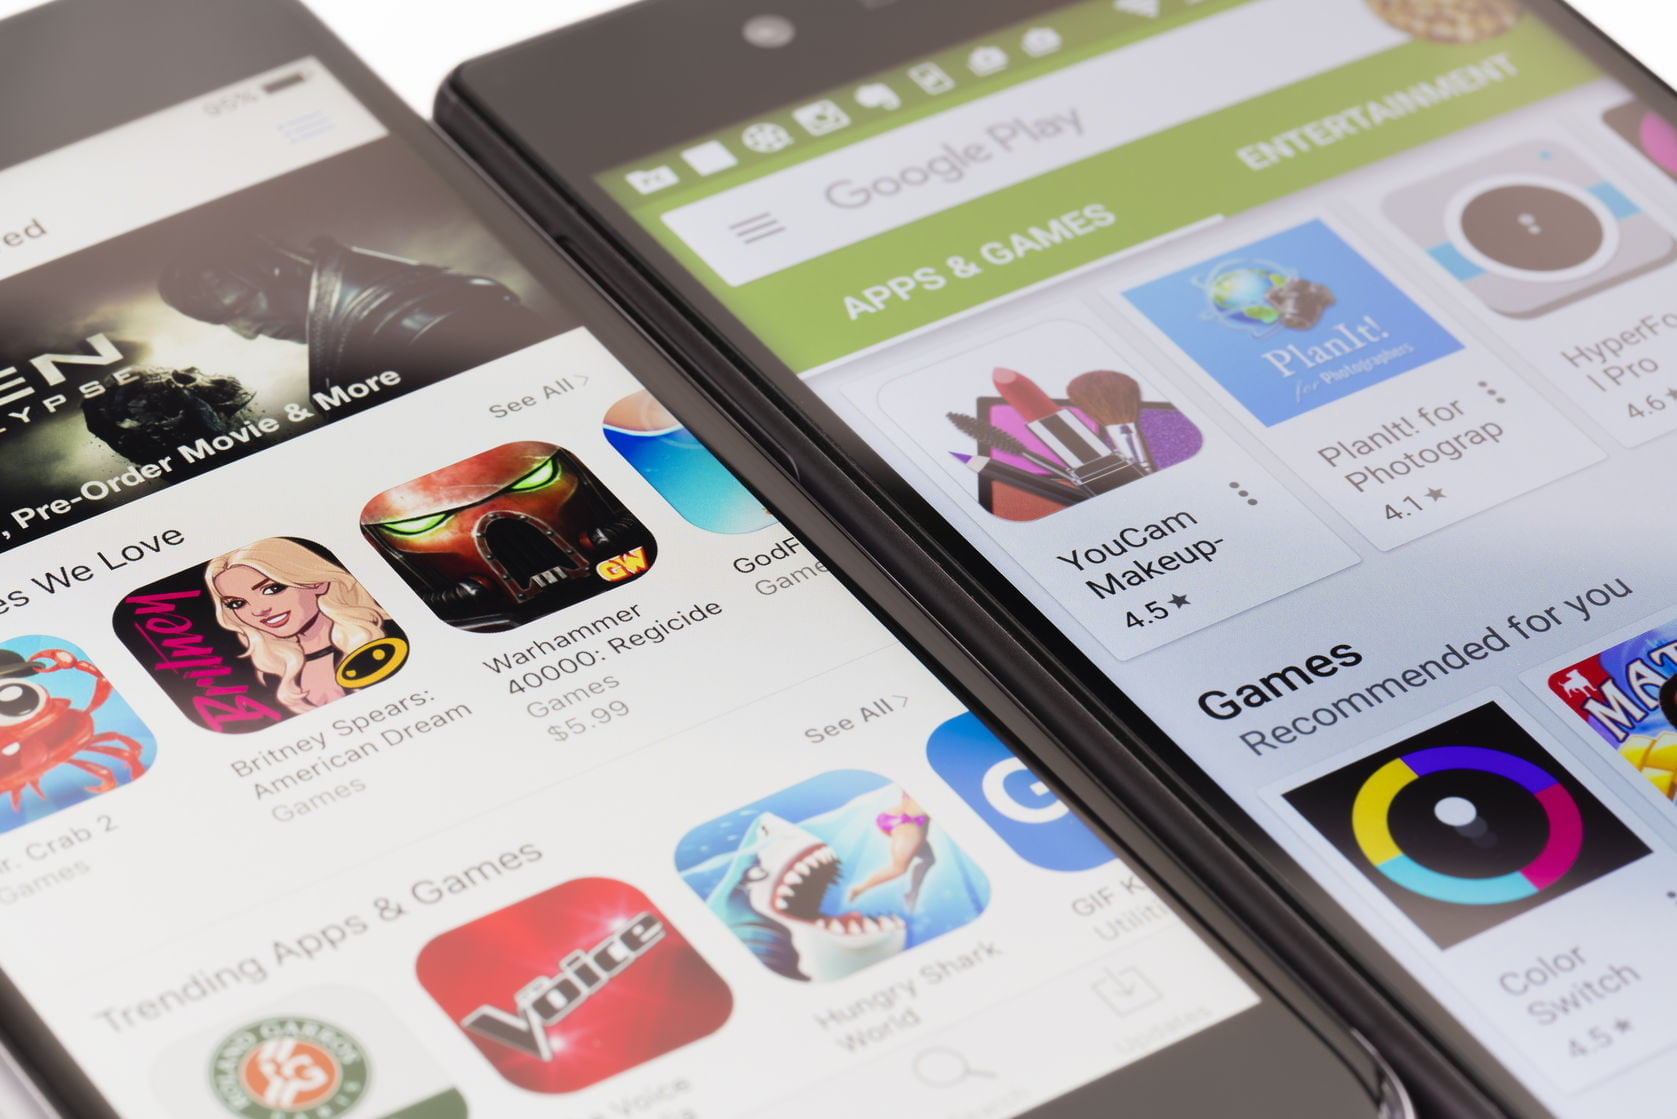 Best android apps for iphone users